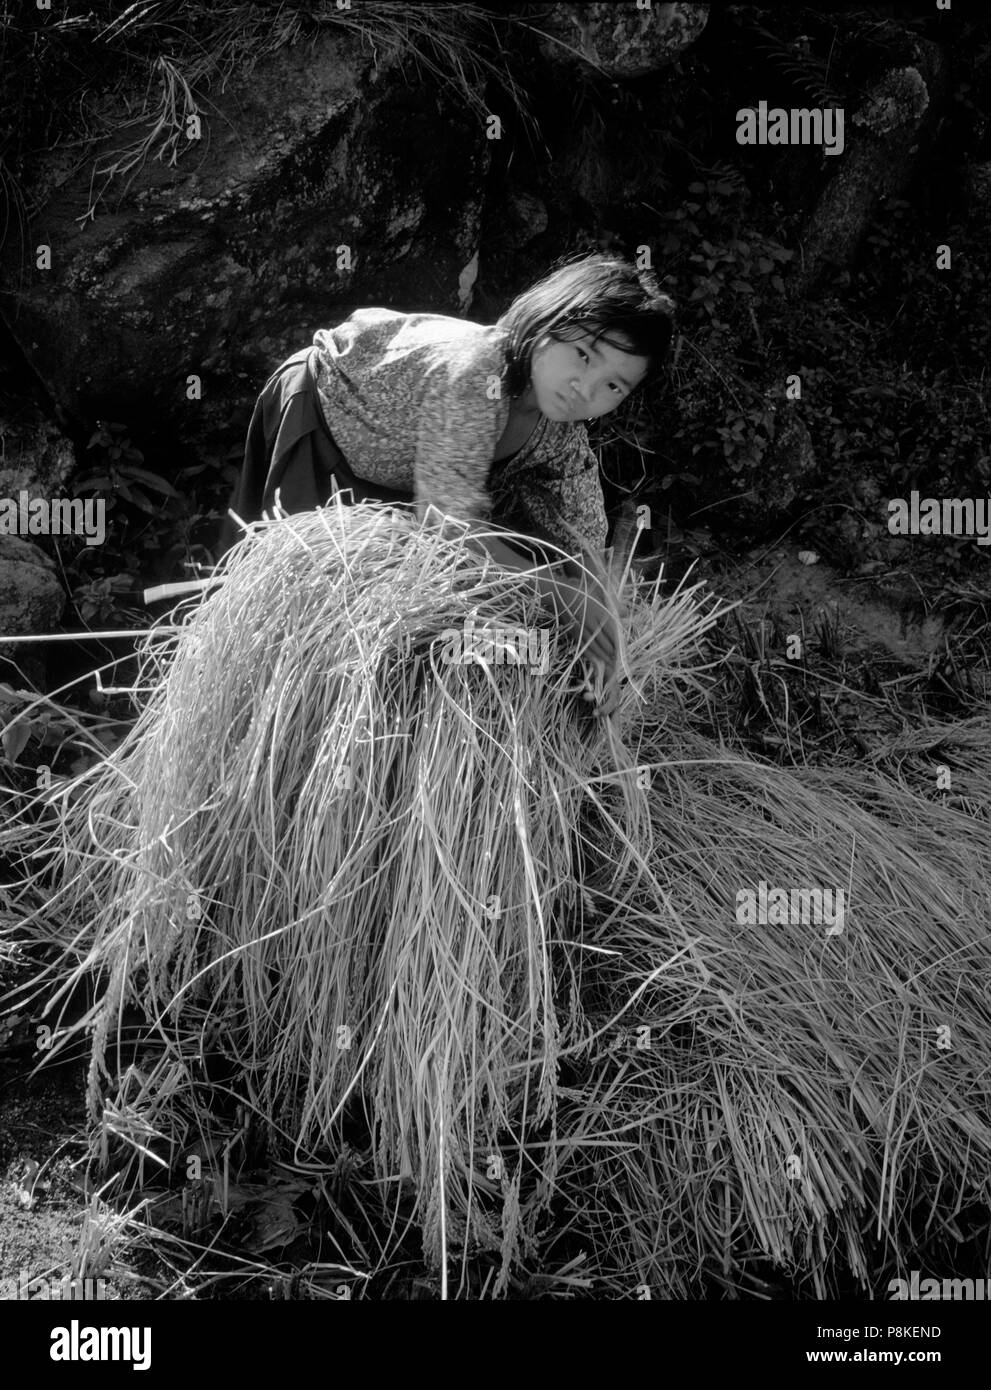 Young NEPALI girl HARVESTING RICE along the BARUN RIVER - MAKALU BARUN CONSERVATION AREA, NEPAL	 - Stock Image